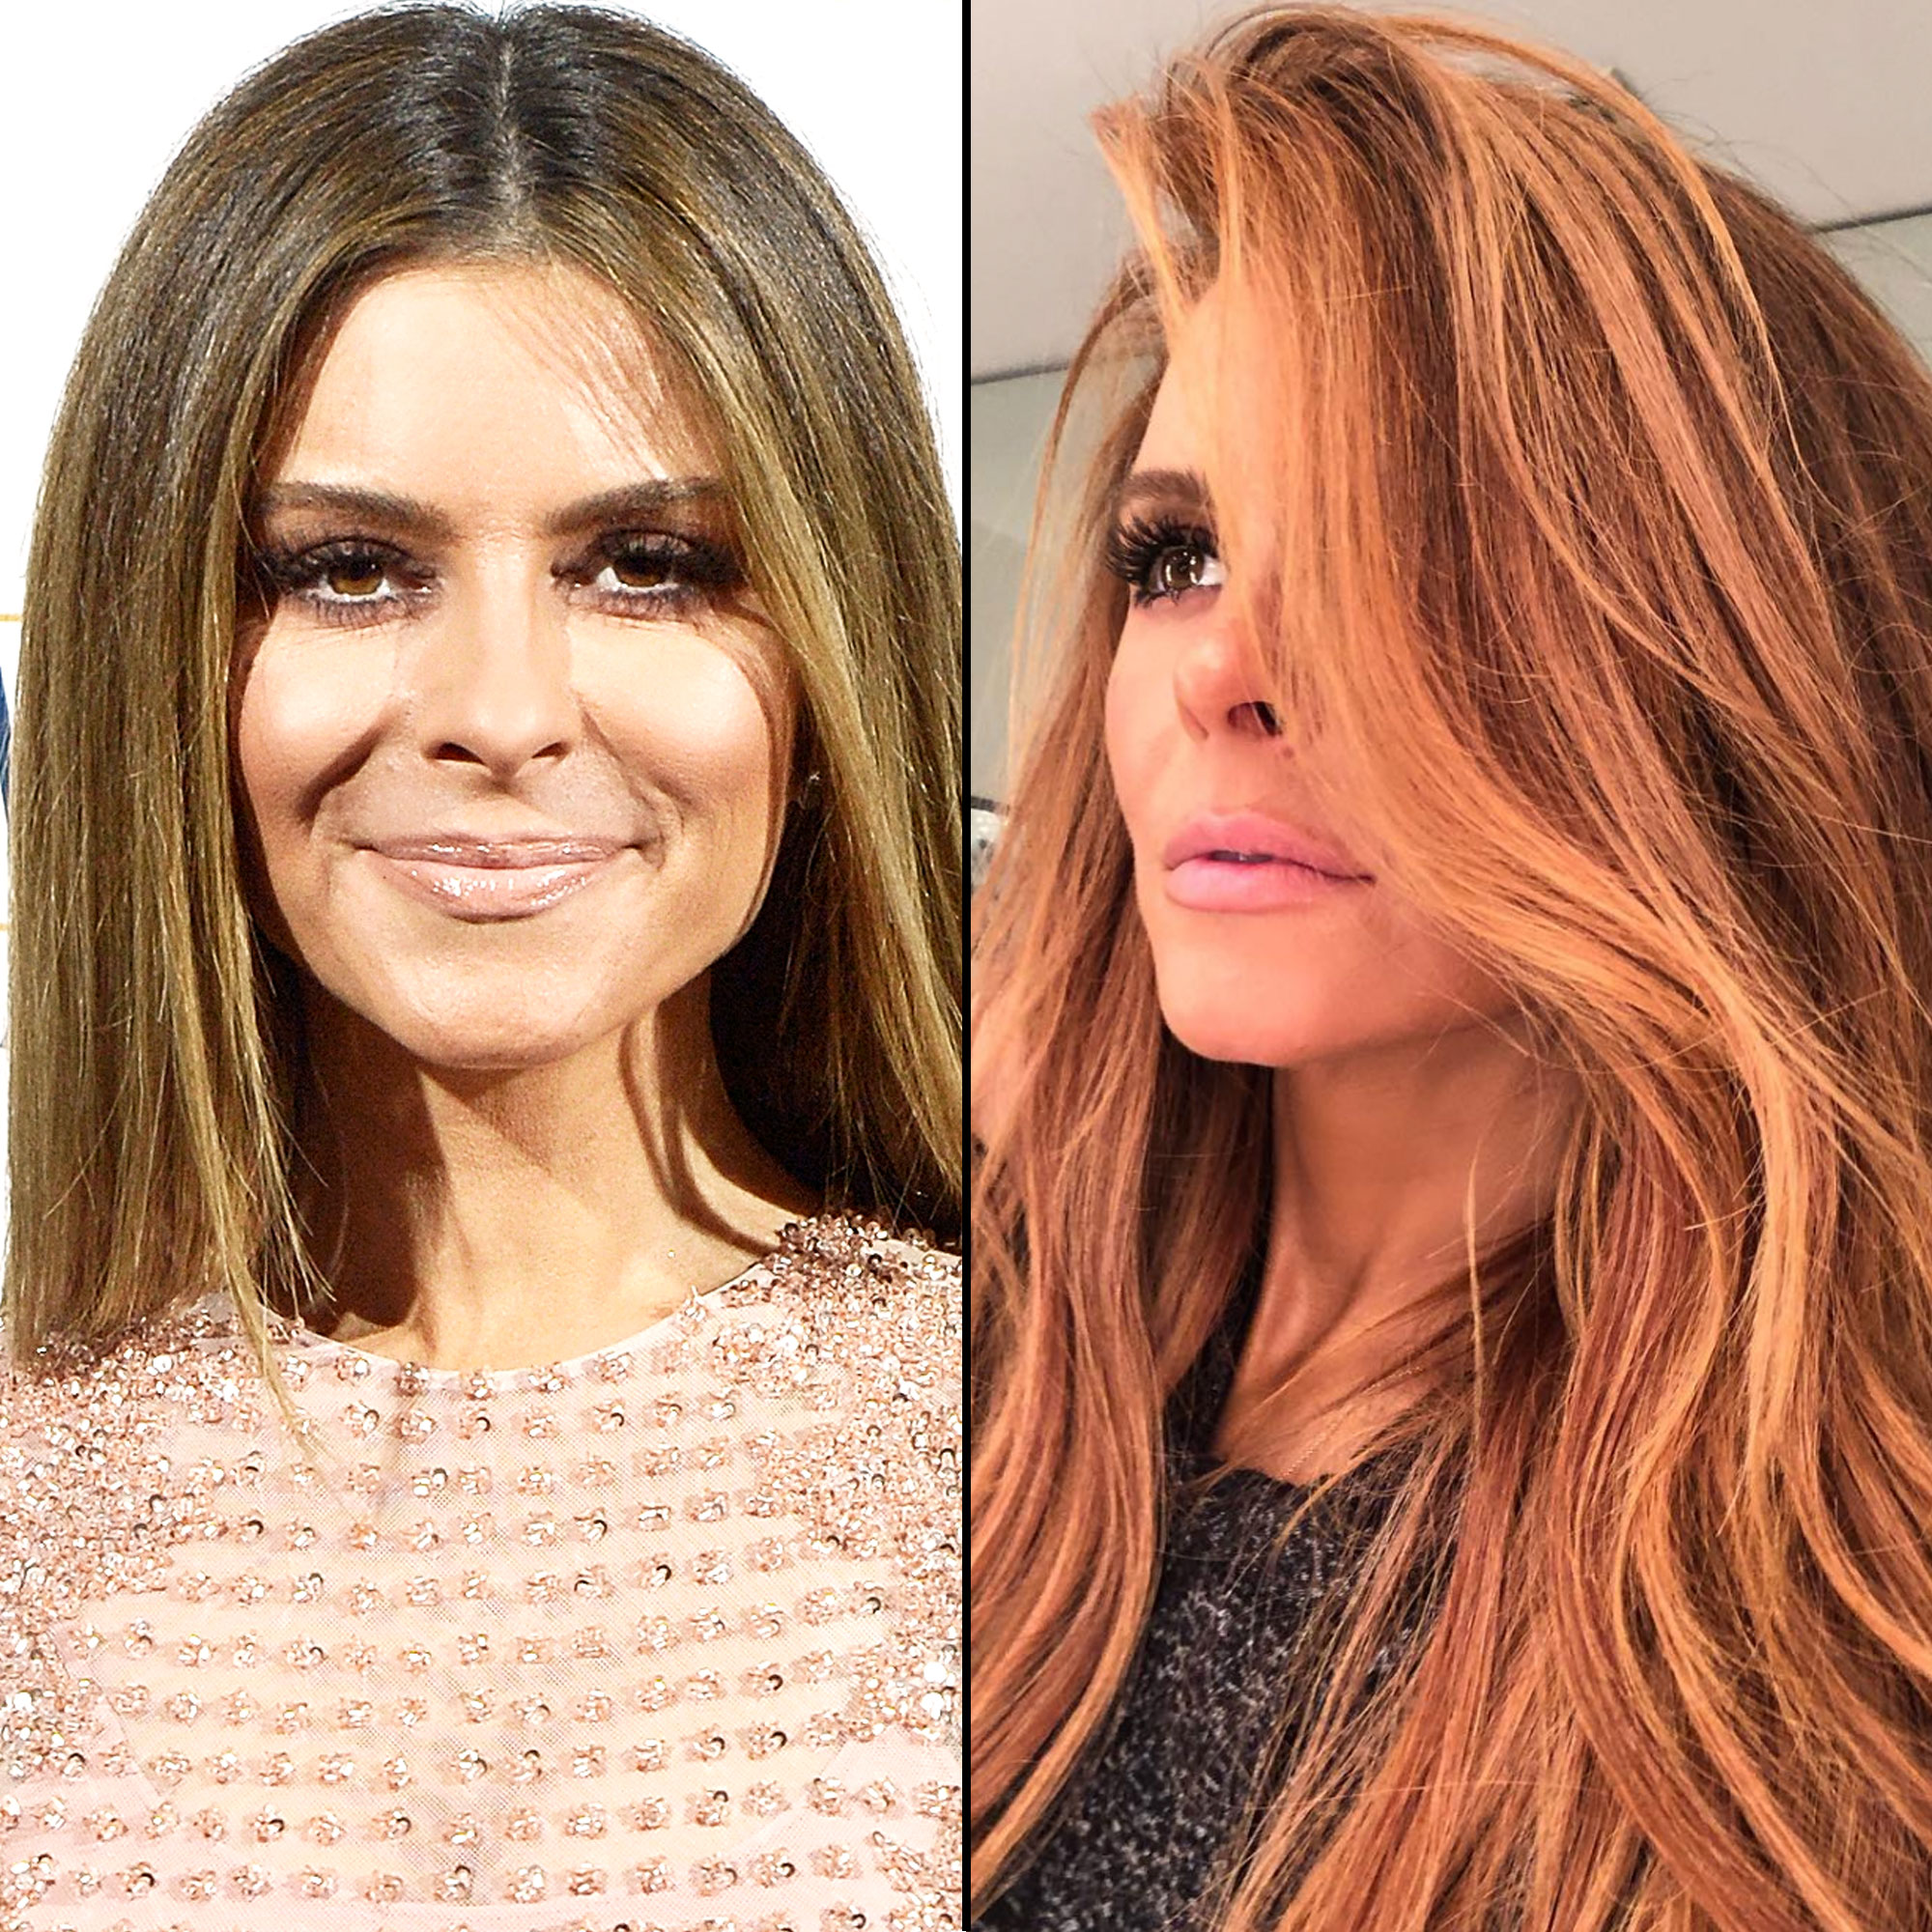 "Maria Menounos Is the Latest Star to Change Up Her Hair in 2019 - ""New year-new color!"" is how the TV personality captioned the selfie of her new red 'do on Instagram on Tuesday, January 29. On his own feed, her mane man Dimitri Giannetos shared that the multi-dimensional auburn hue is the first time the star has ever deviated from her usual bronde shade."